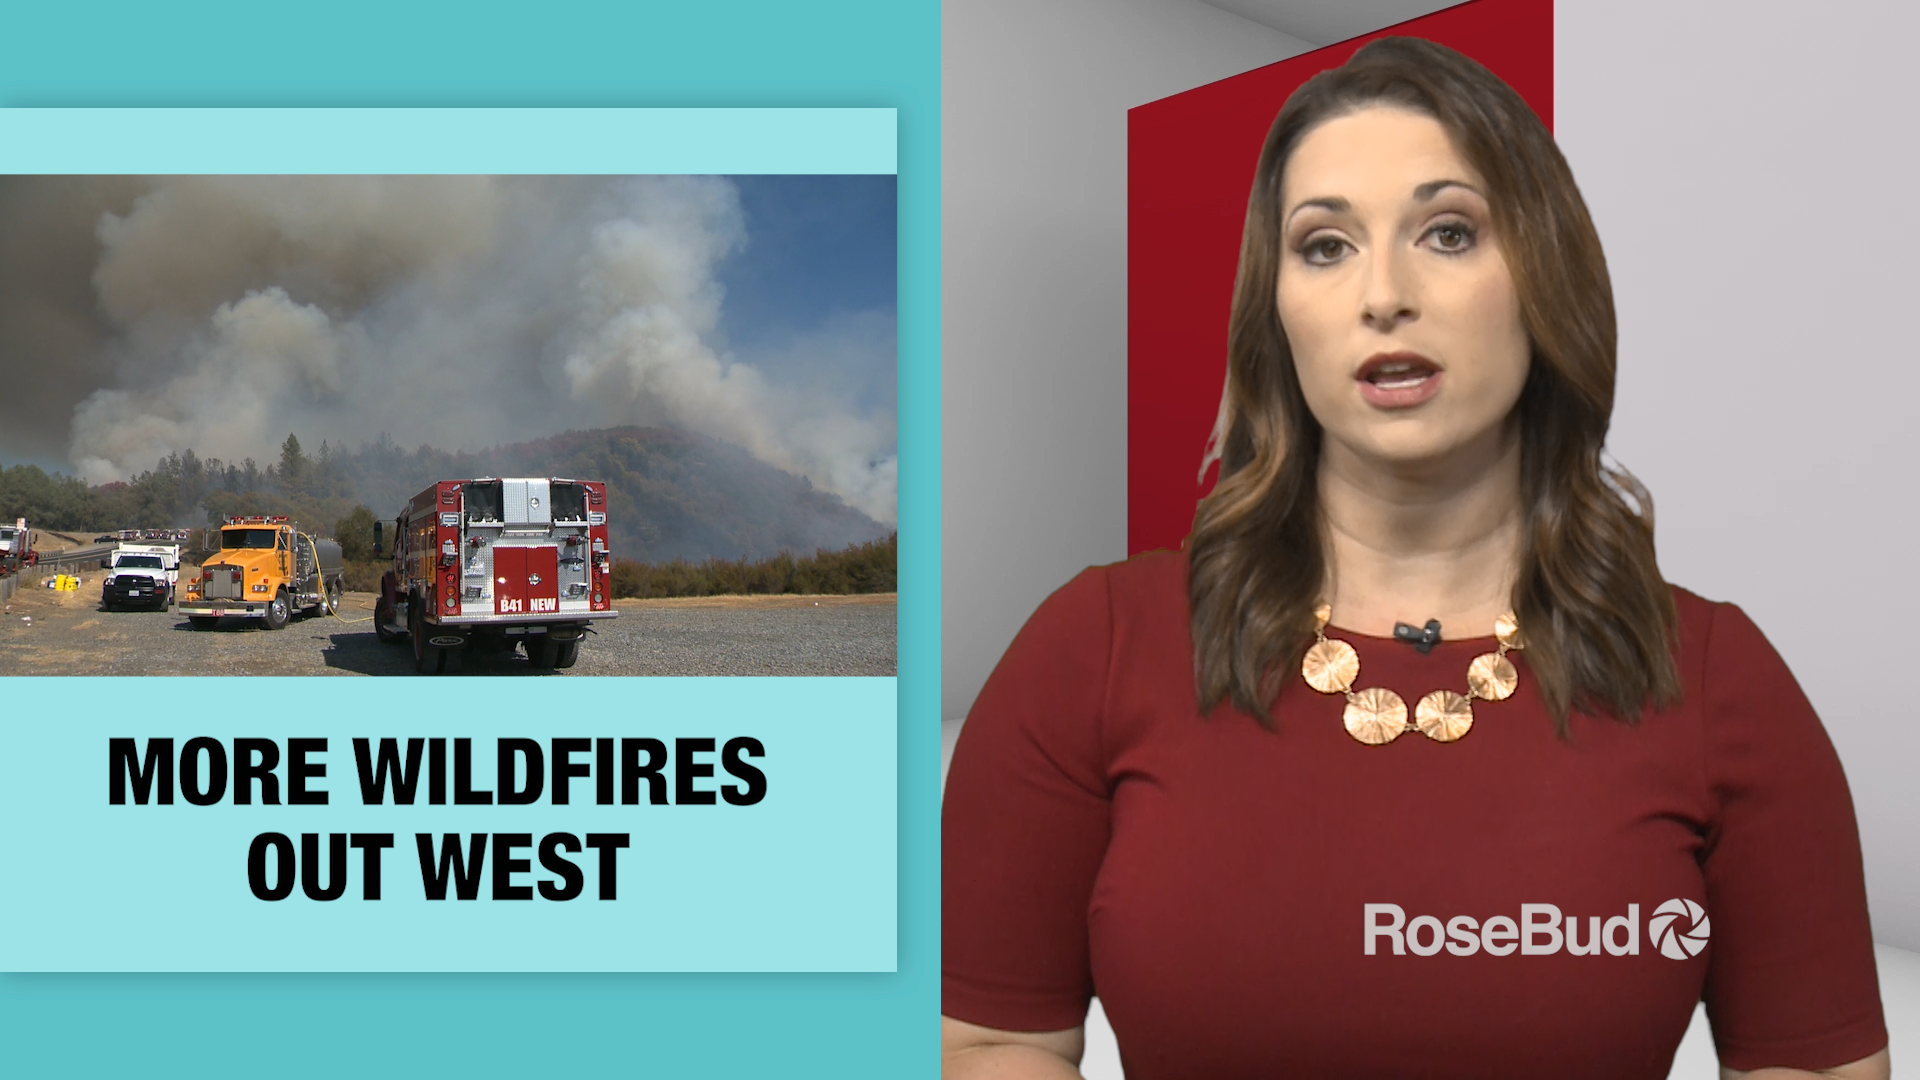 More Wildfires Out West